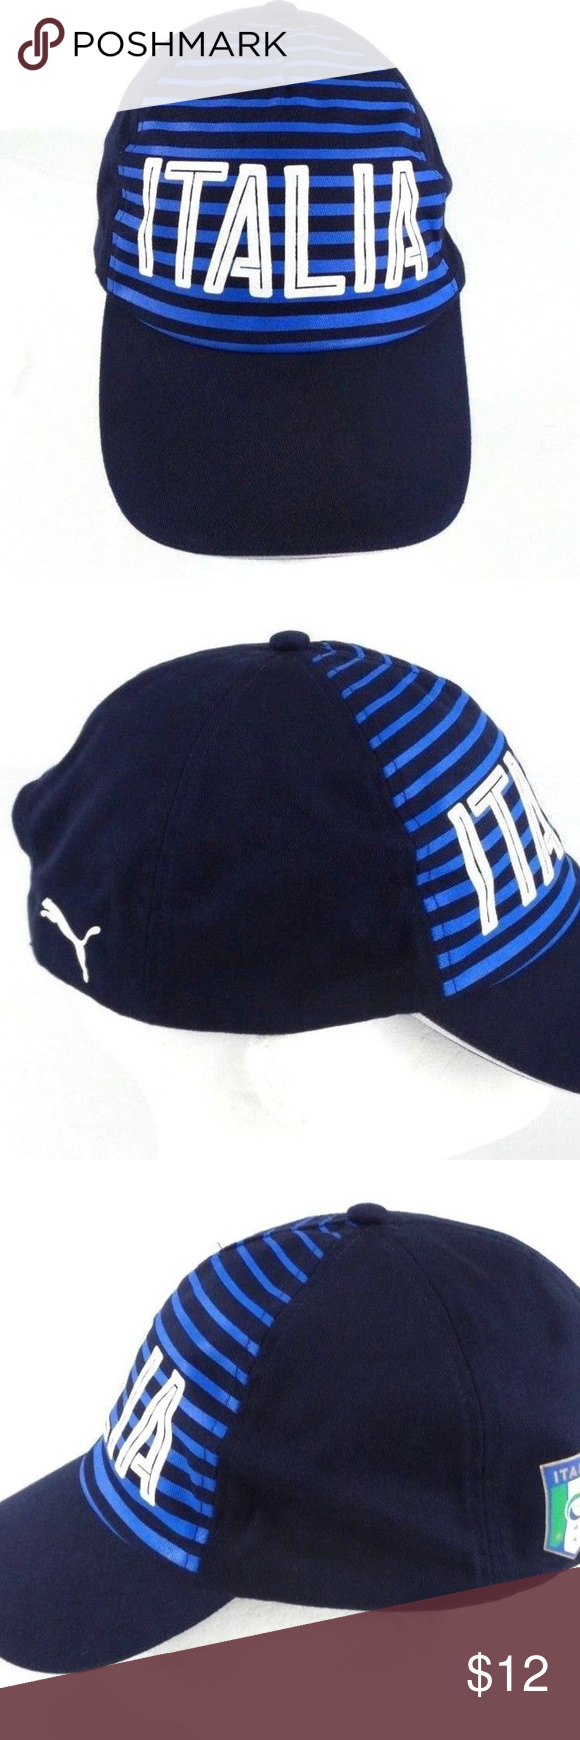 4a101645829 ... sweden puma italia figc ball cap hat italy national cap this posting is  for a puma